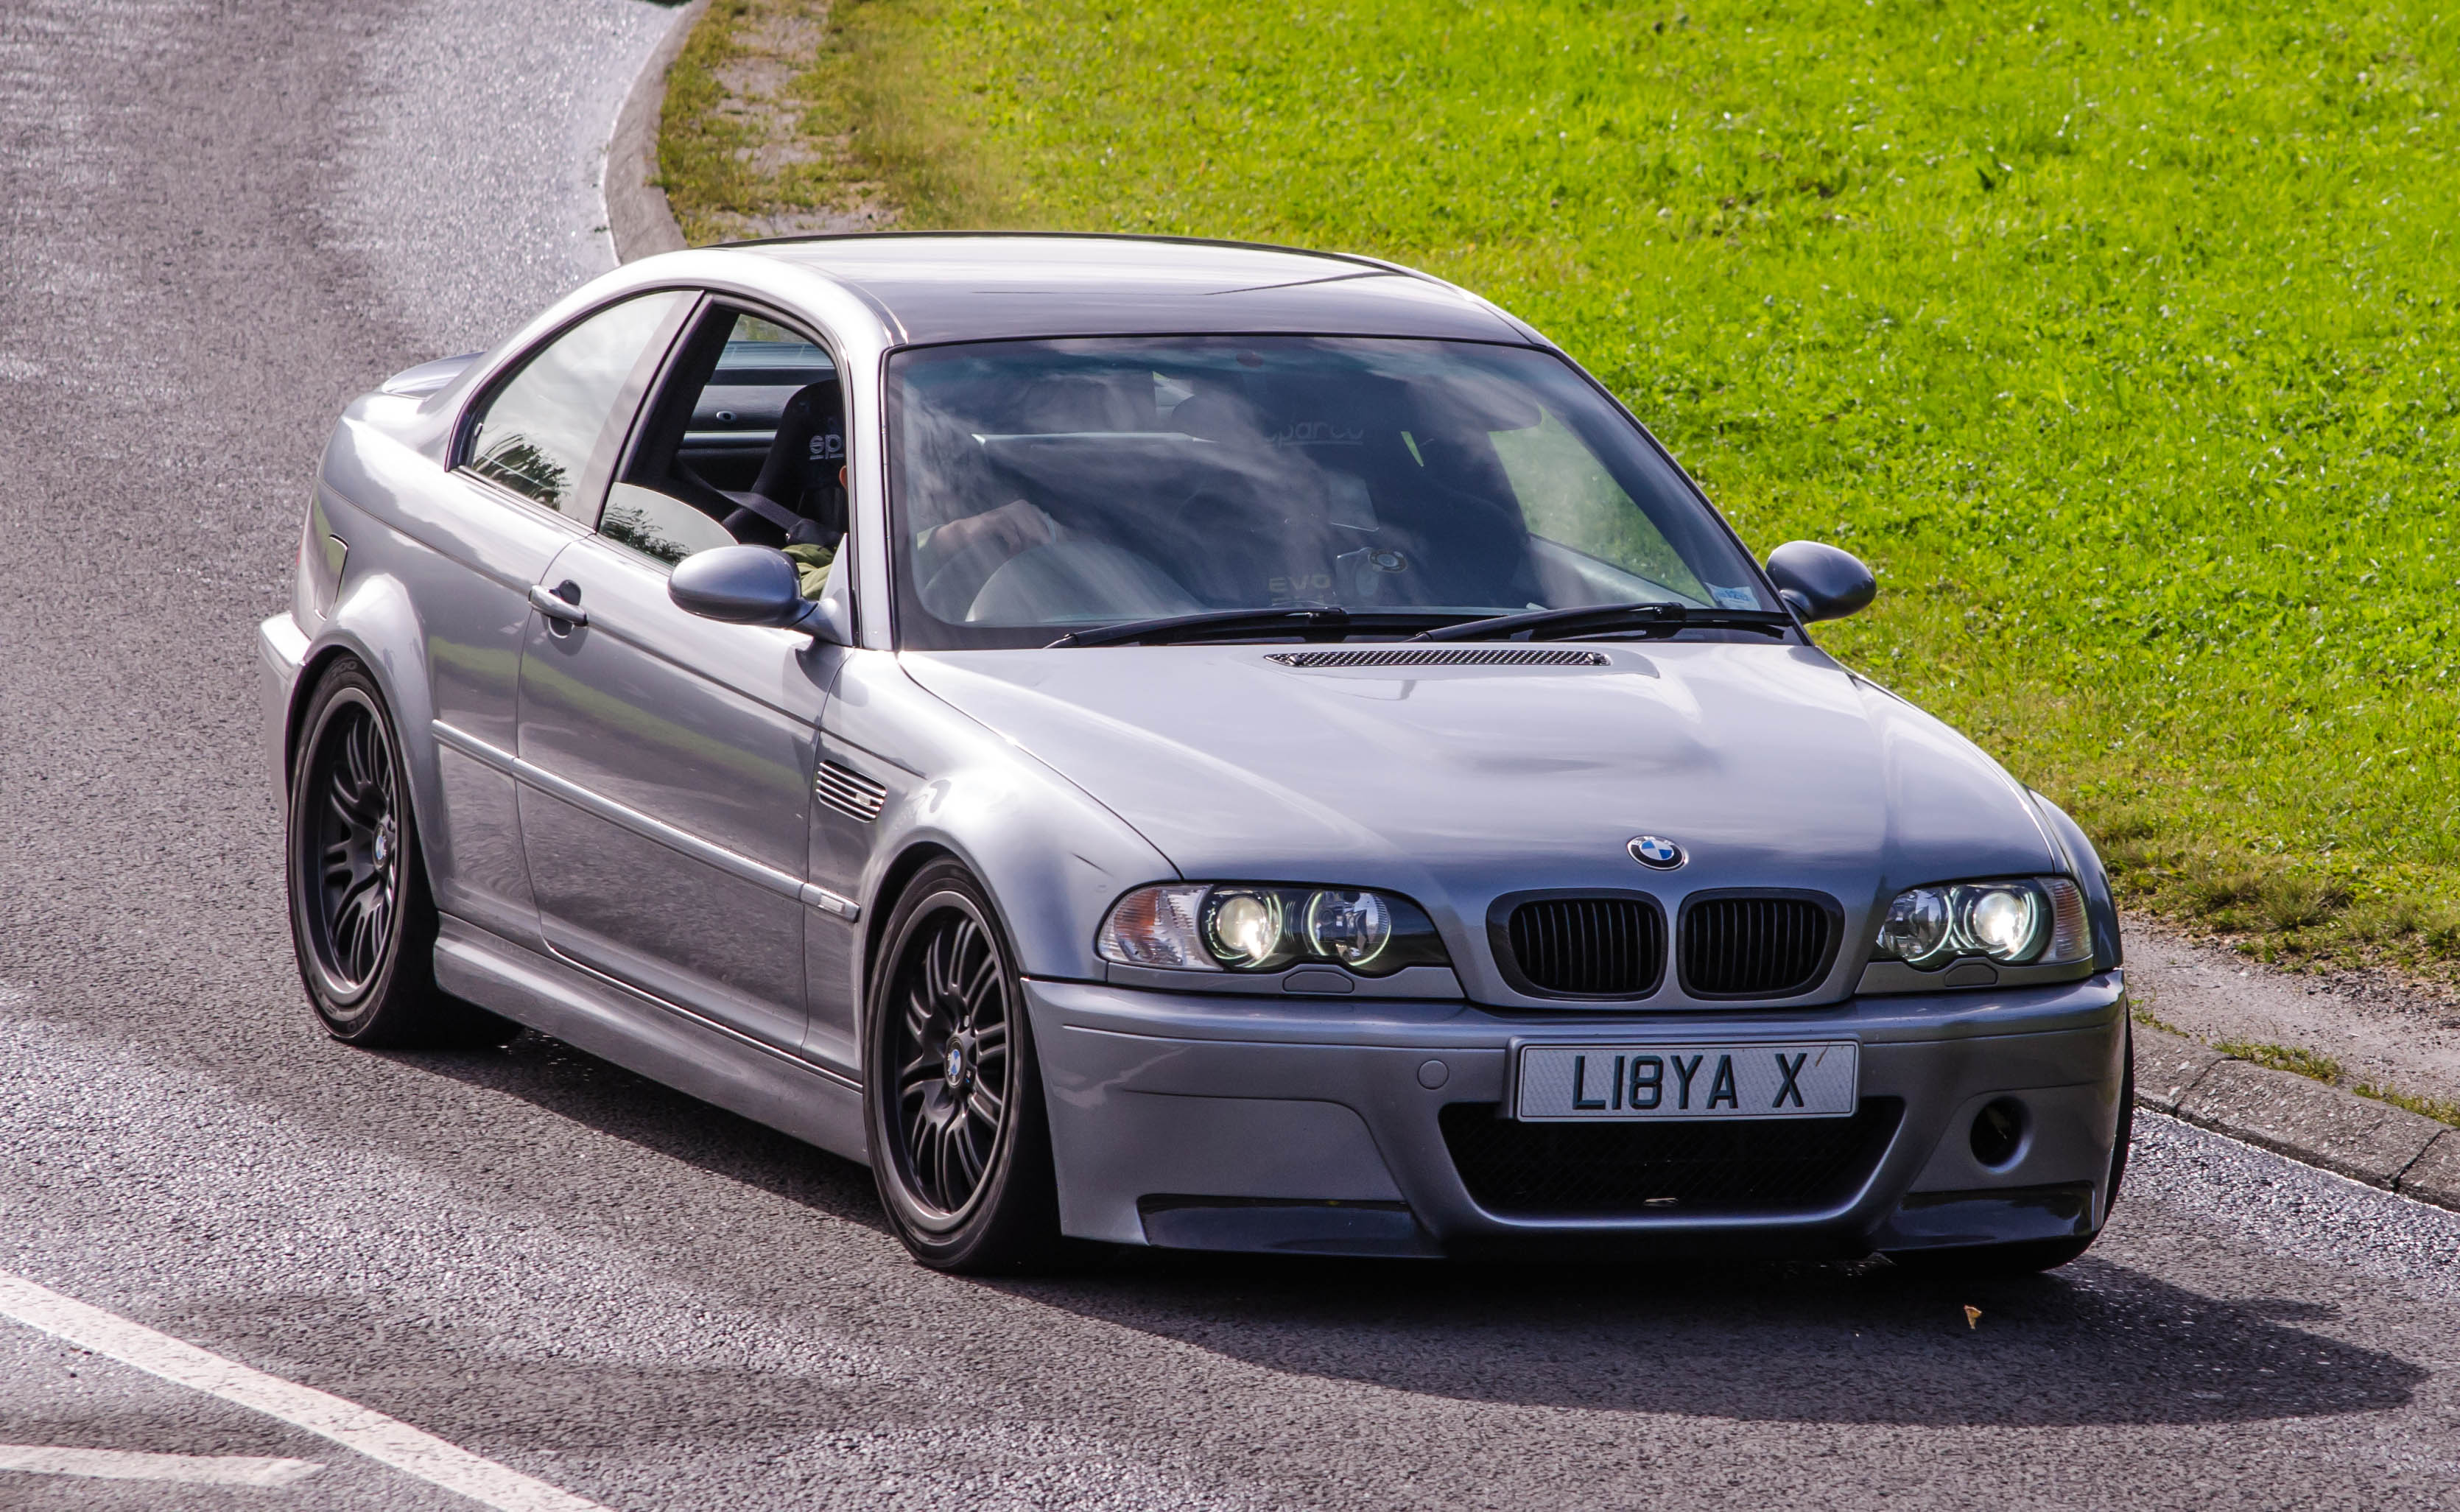 2004 BMW M3 CSL...one of only 1,400 made | Flickr - Photo Sharing!